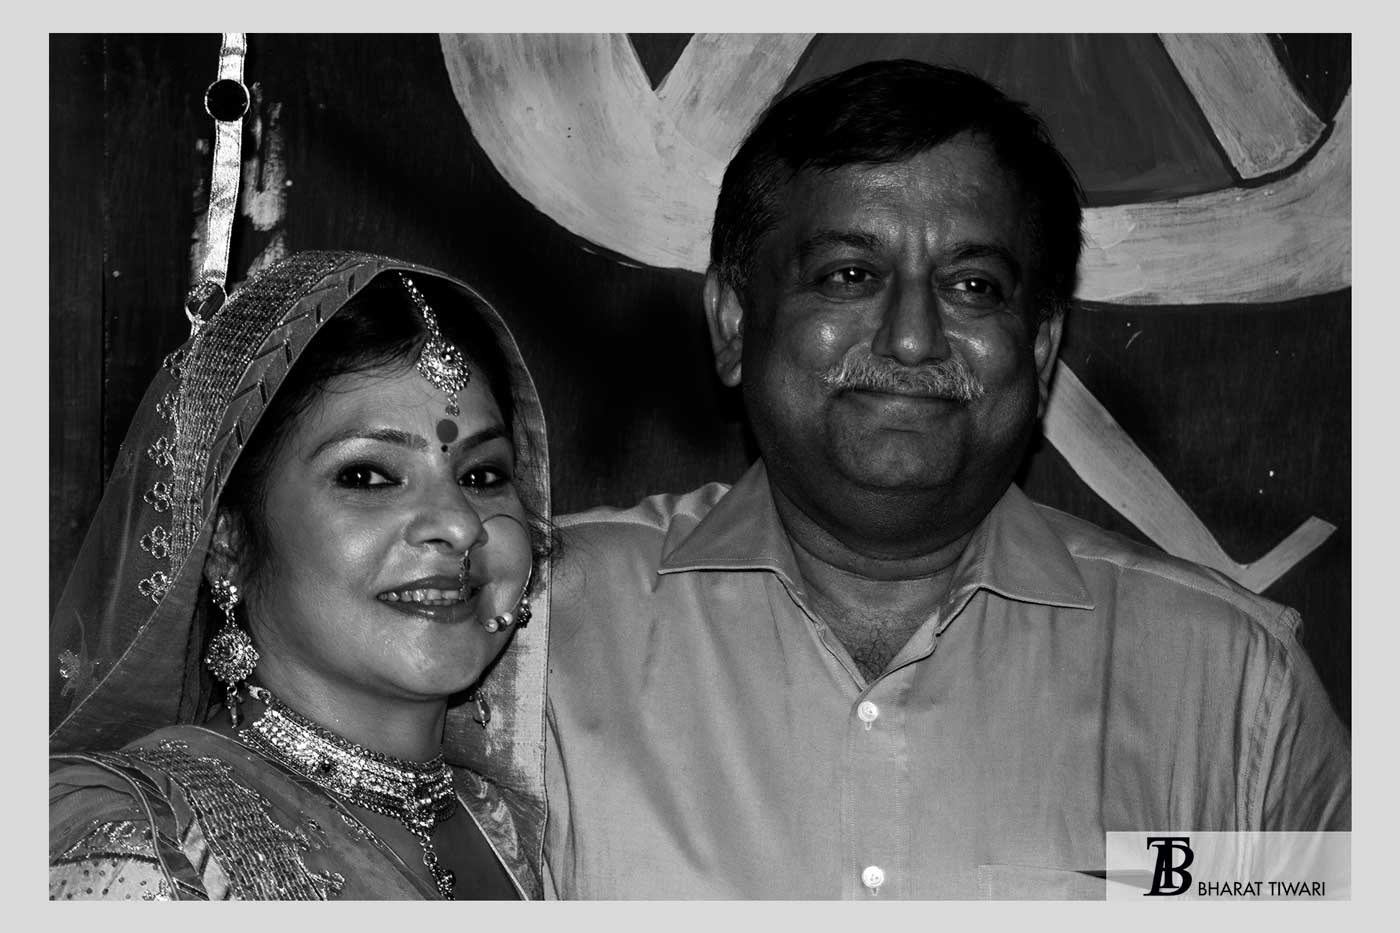 अवनीश अवस्थीजी मालिनी अवस्थी malini awasthi with husband awanish awasthi